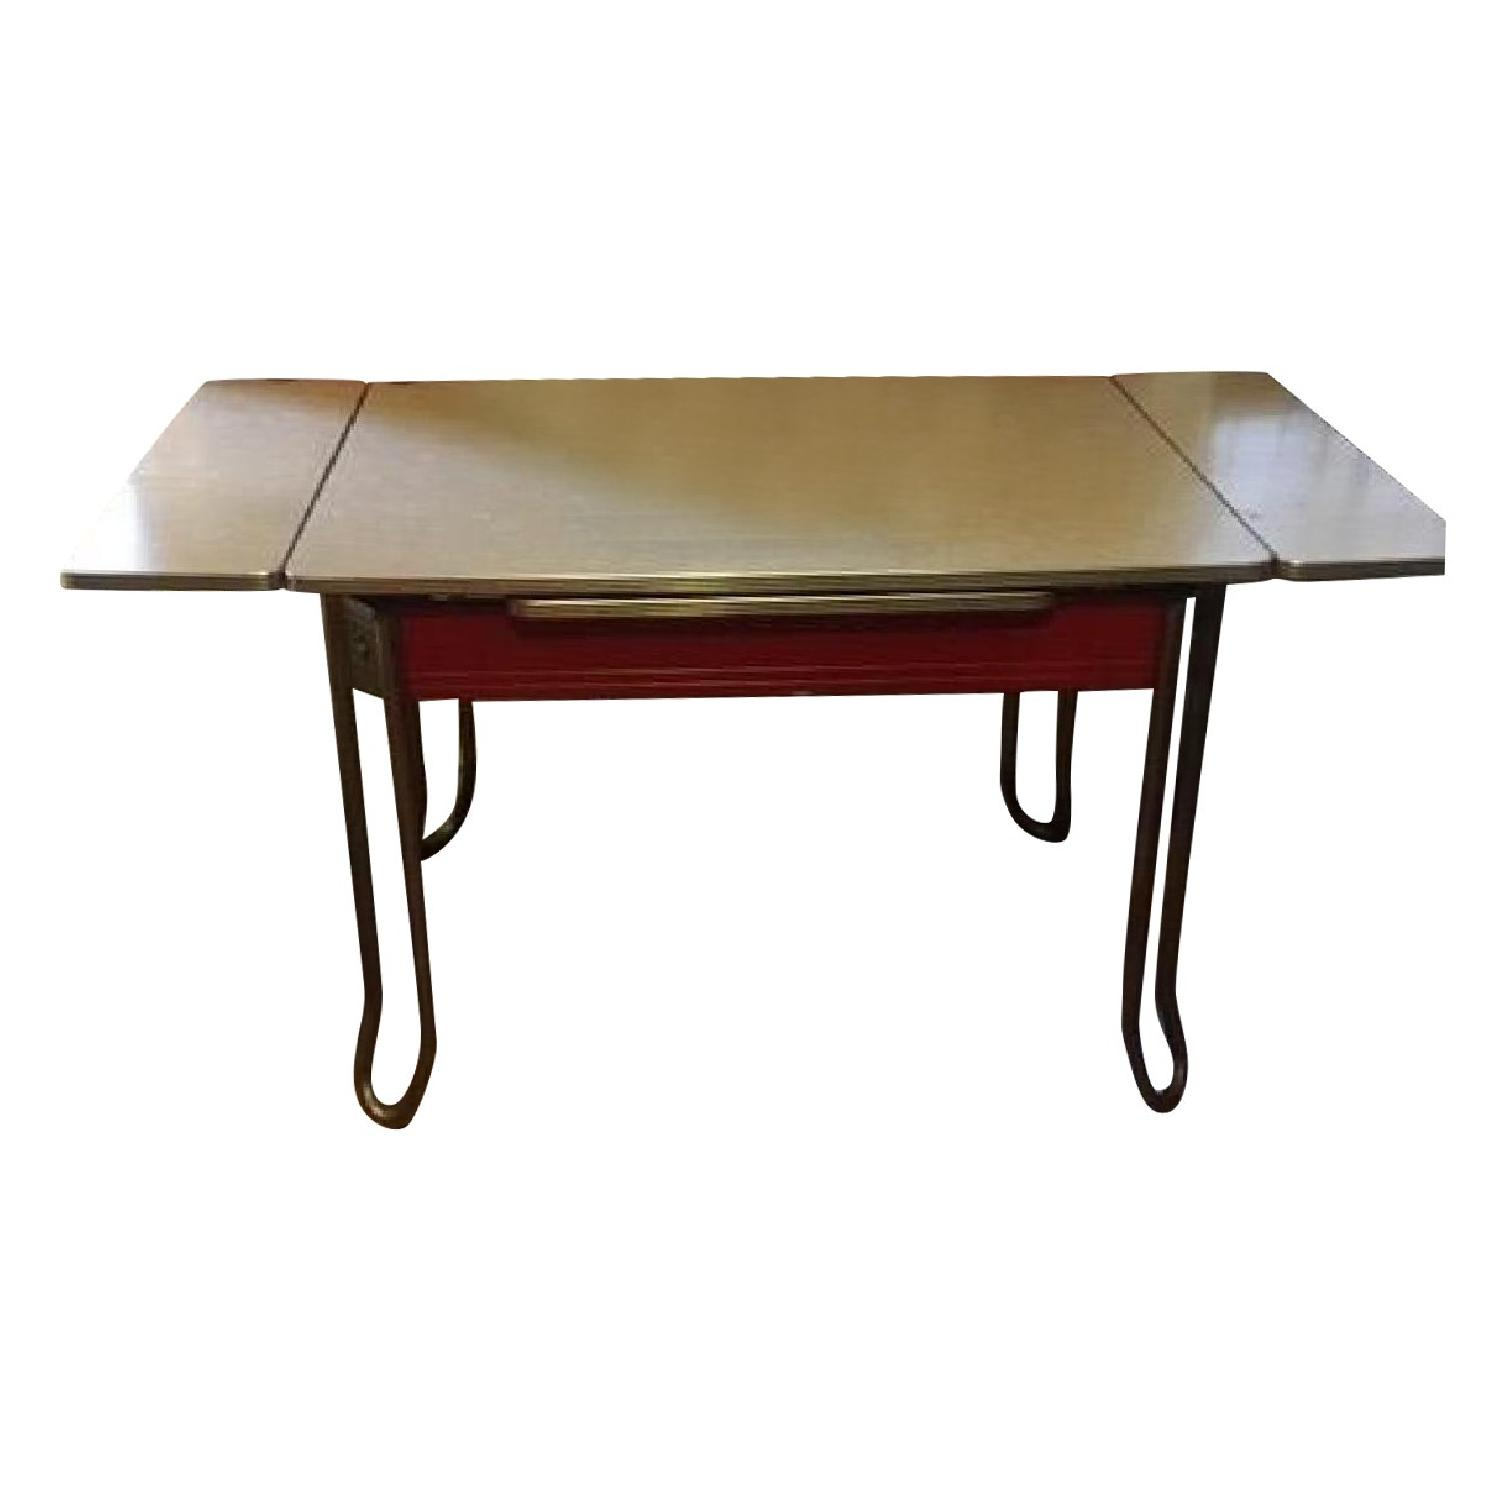 Vintage 60s Formica Dining Room Table